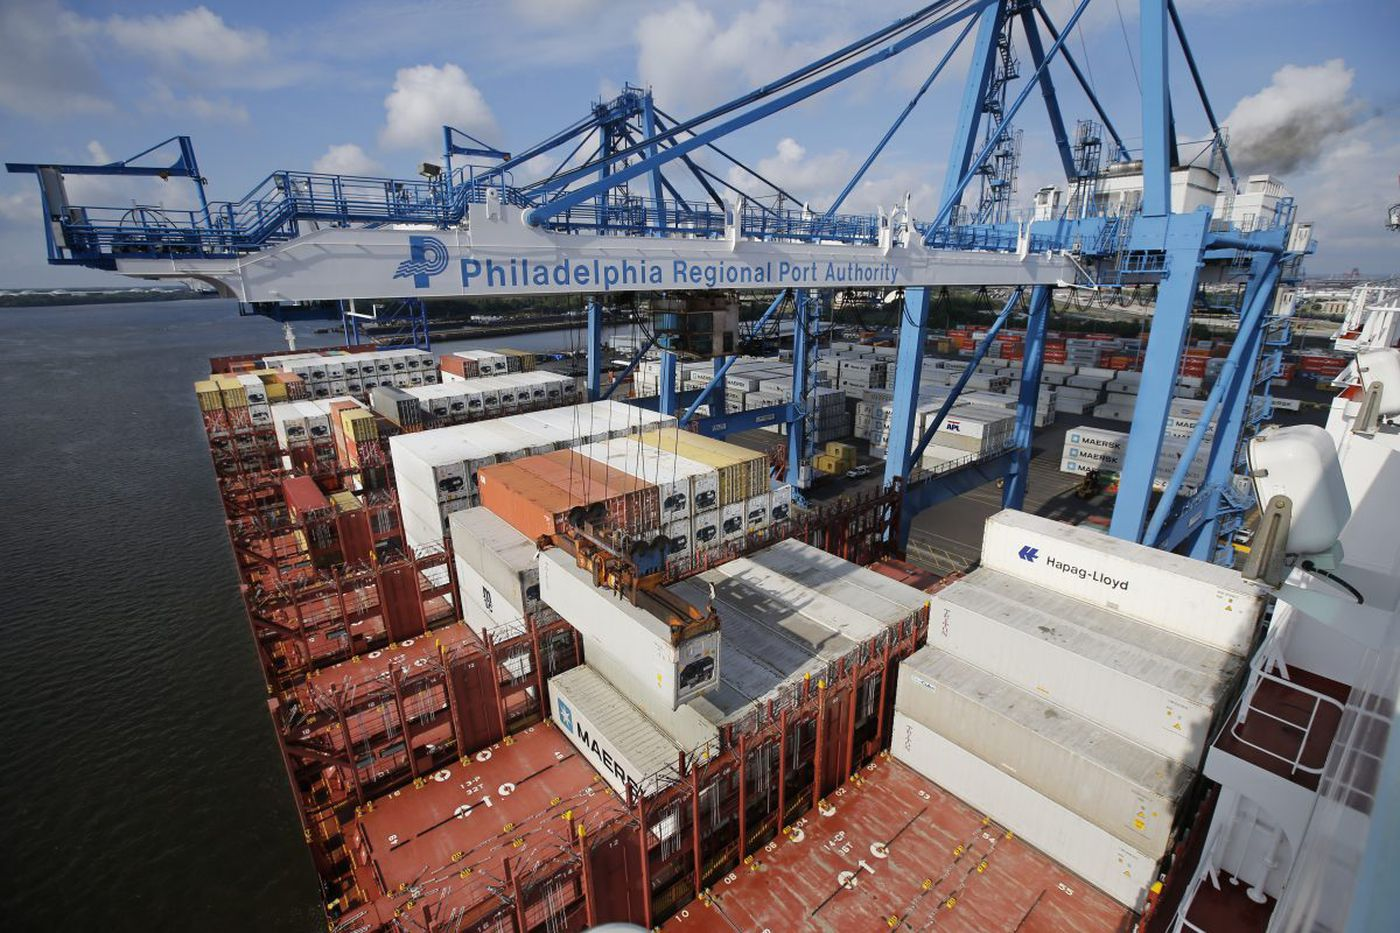 PhilaPort acquires 29 acres in South Philadelphia for port expansion